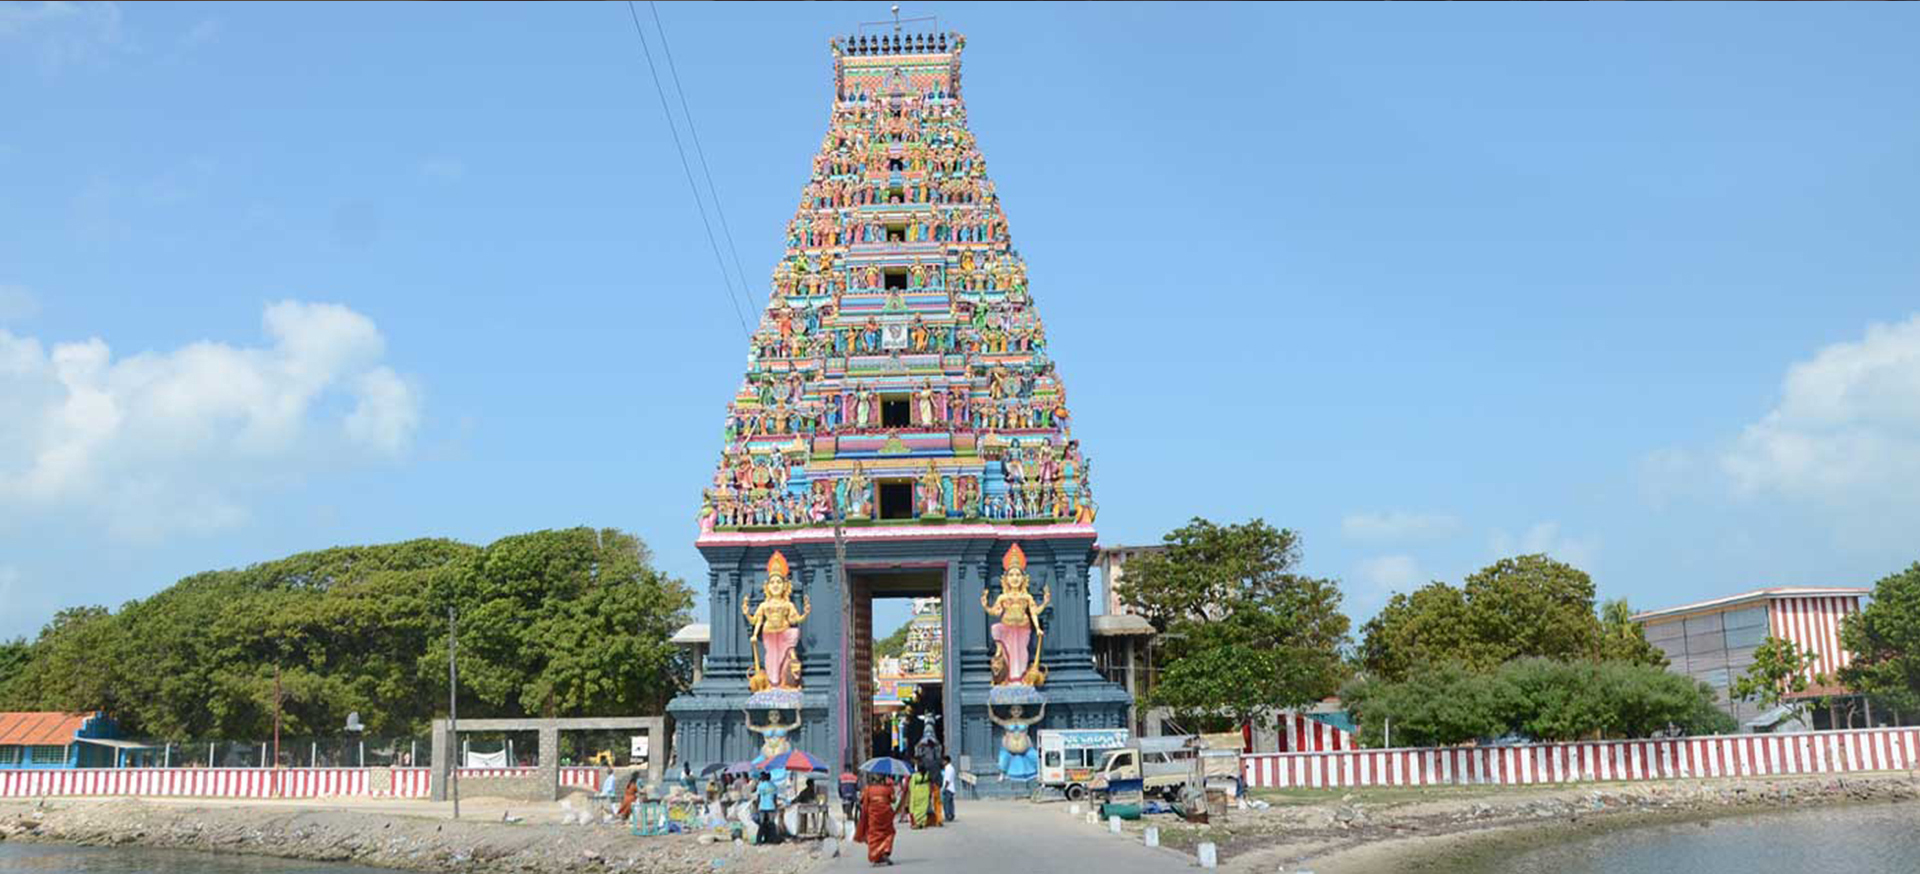 Jaffna Guide Slider Image 1